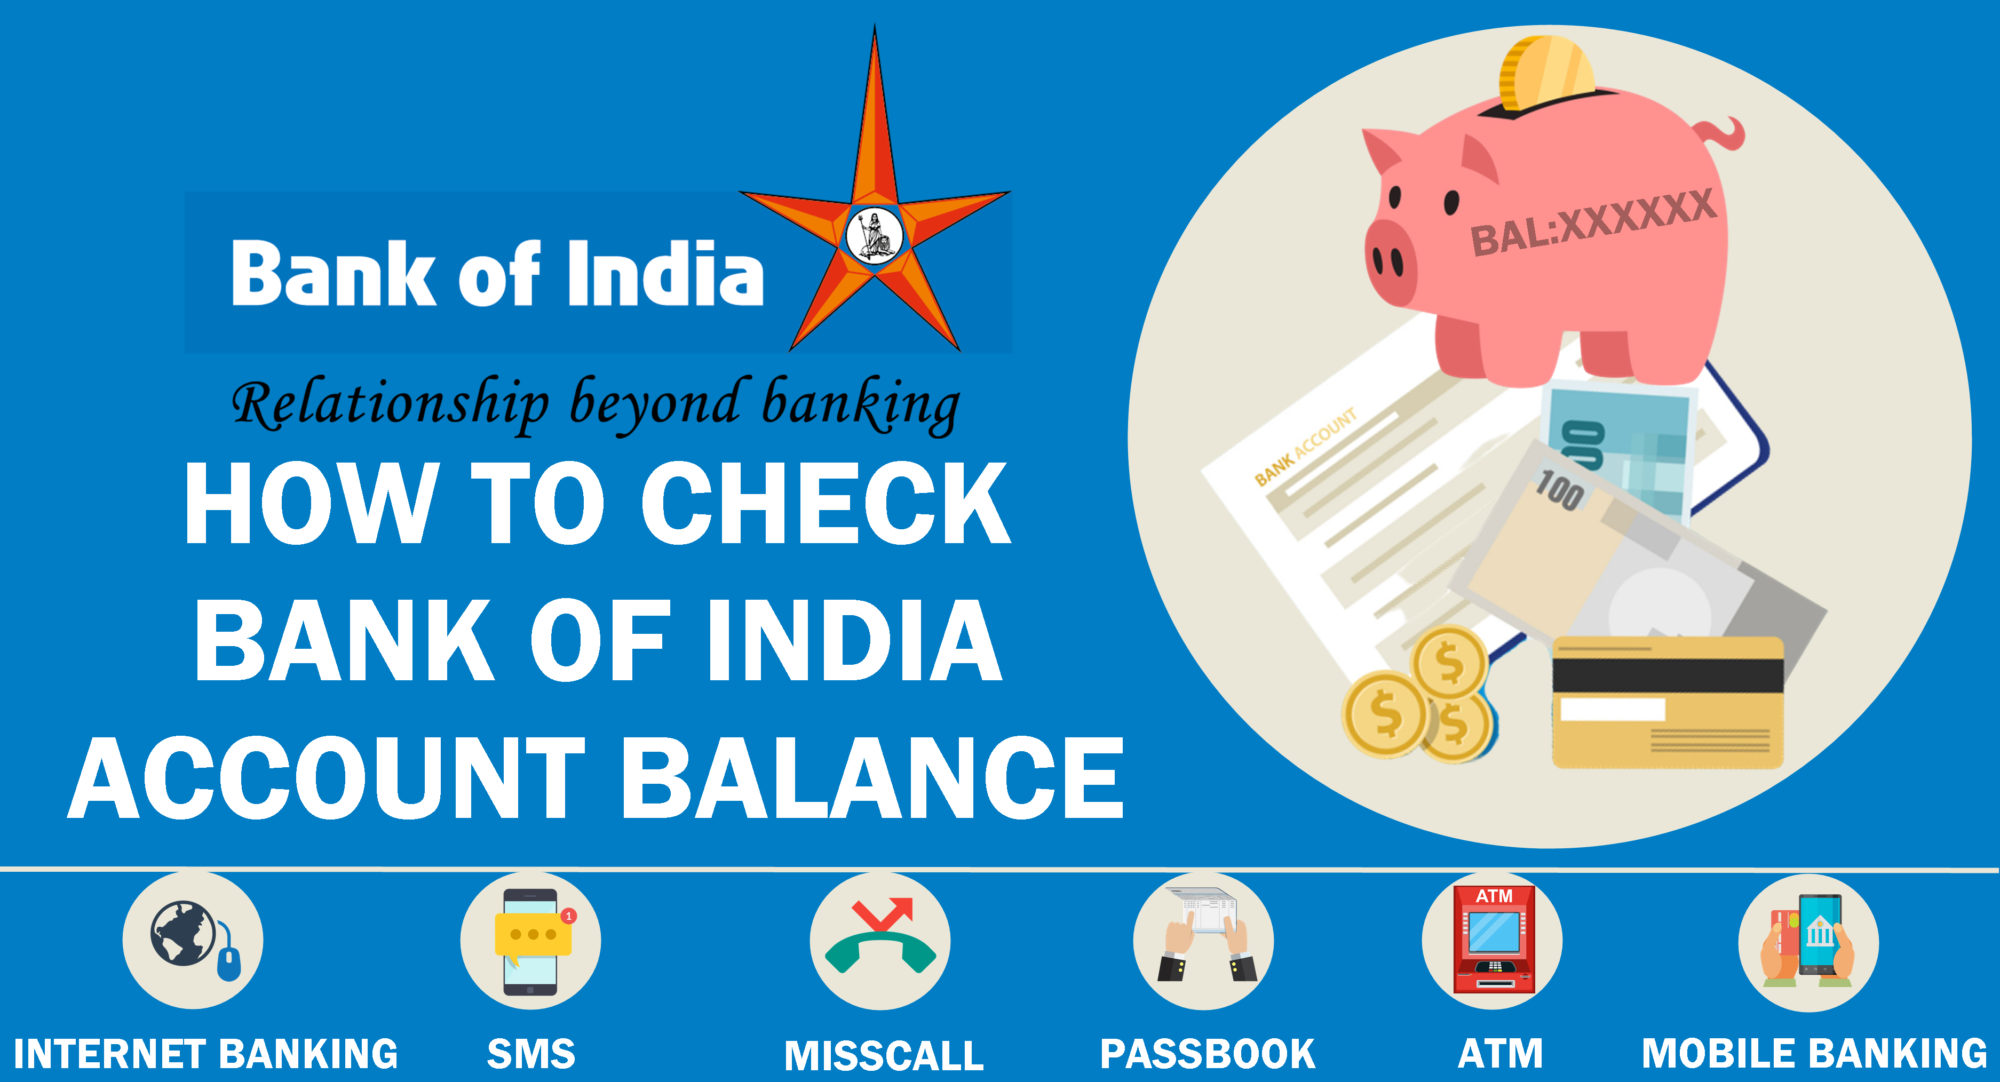 Bank of India Balance Check